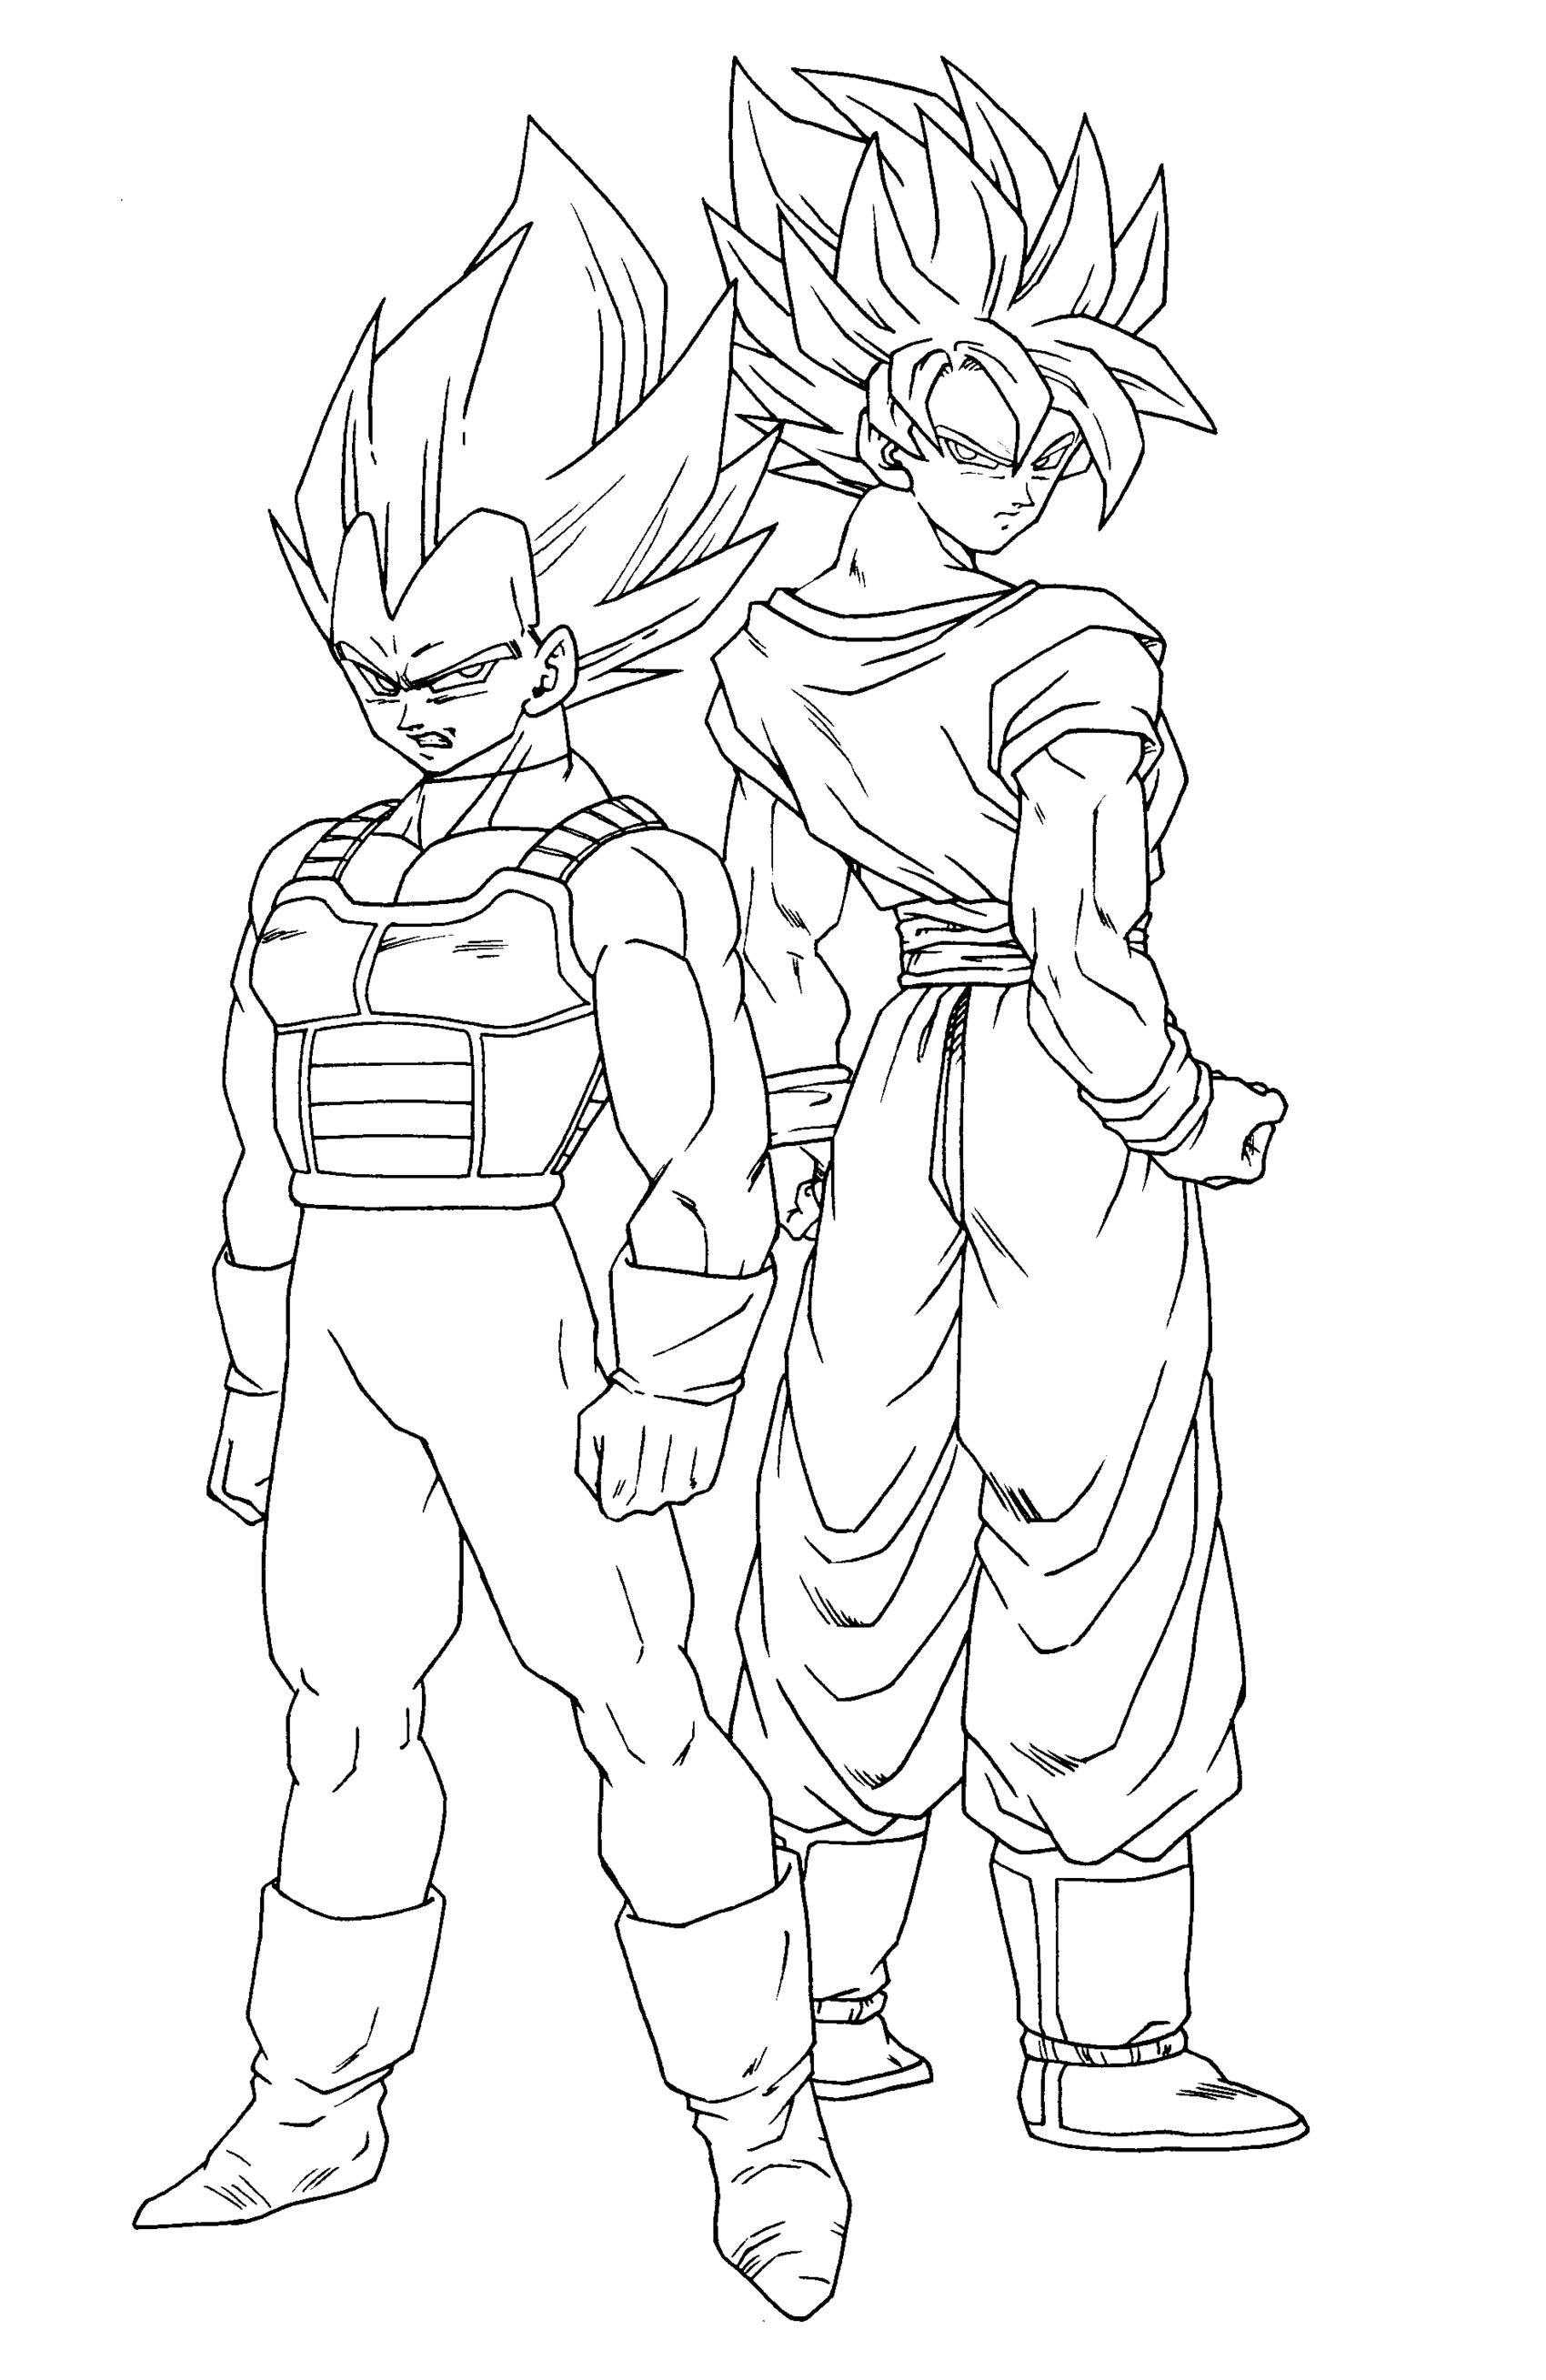 SonGoku and Vegeta Dragon Ball